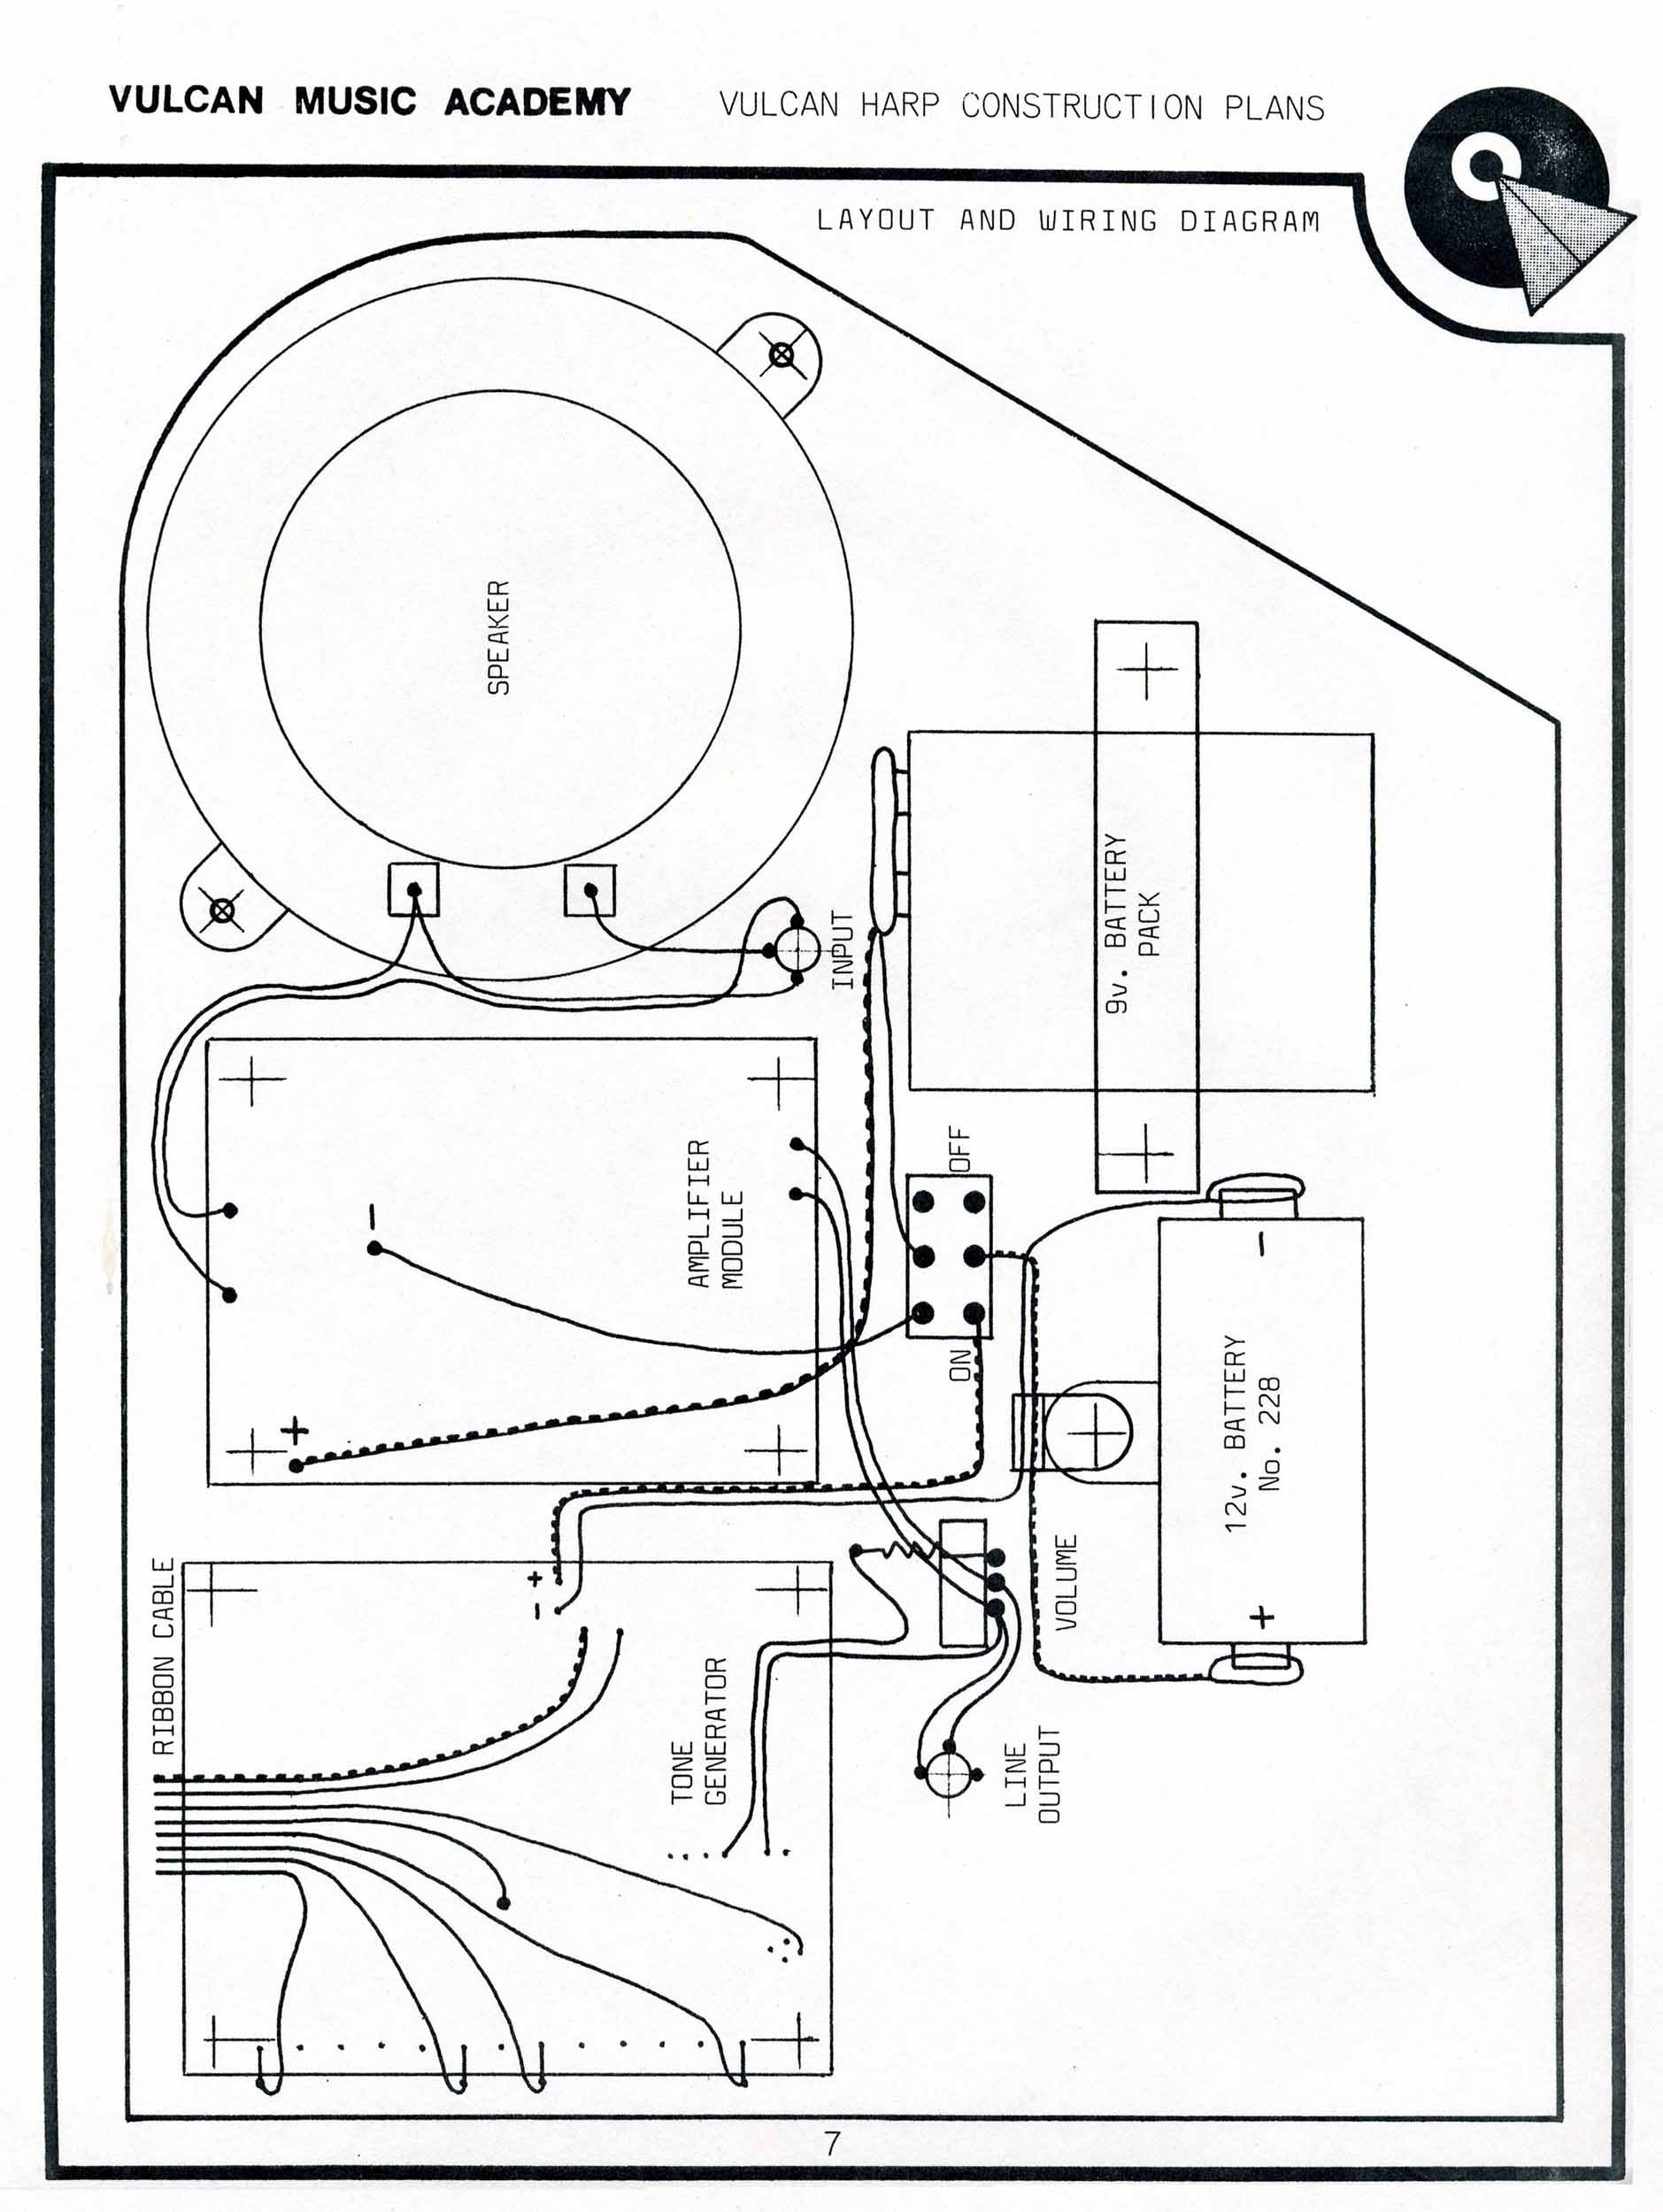 Construction Bathroom Plans star trek blueprints: vulcan harp construction plans